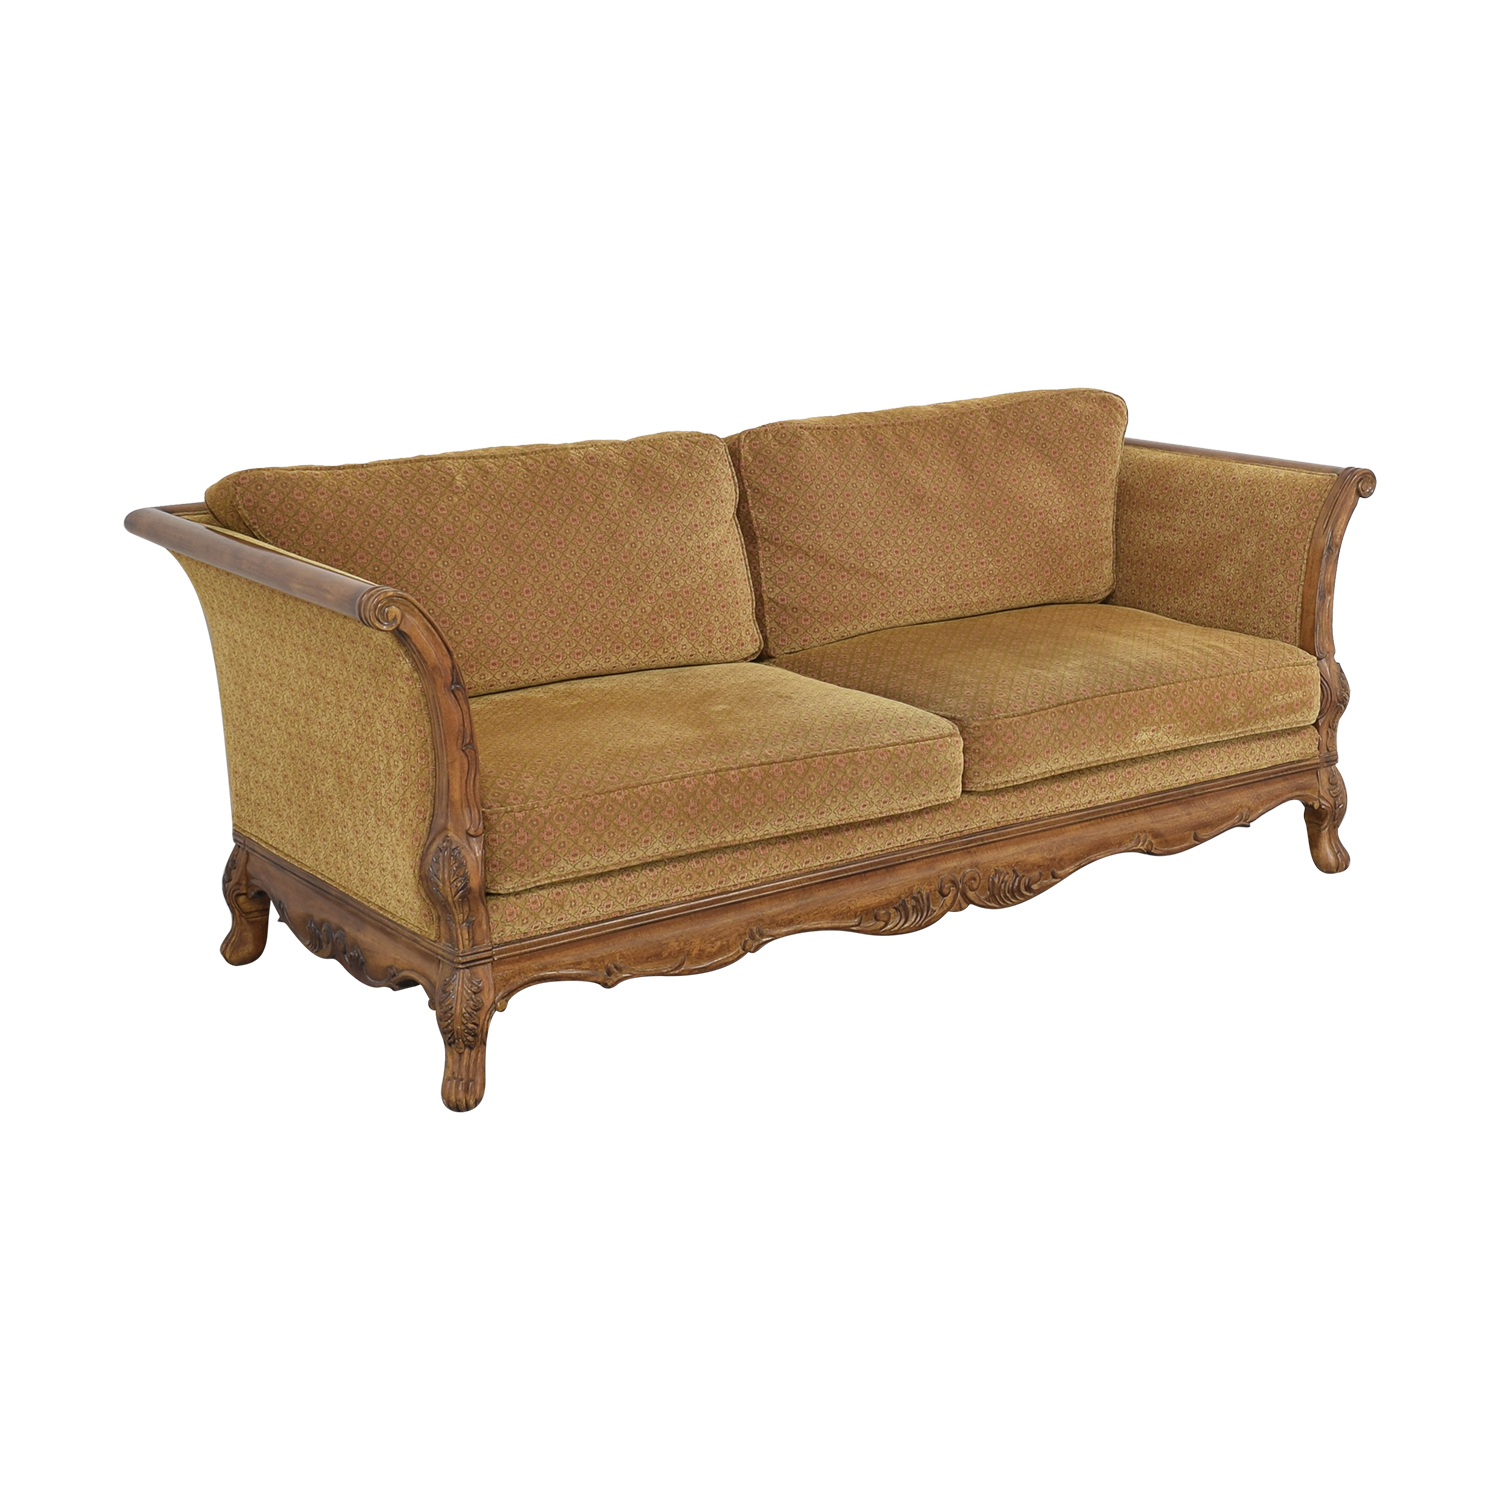 Bernhardt Bernhardt Traditional Sofa on sale